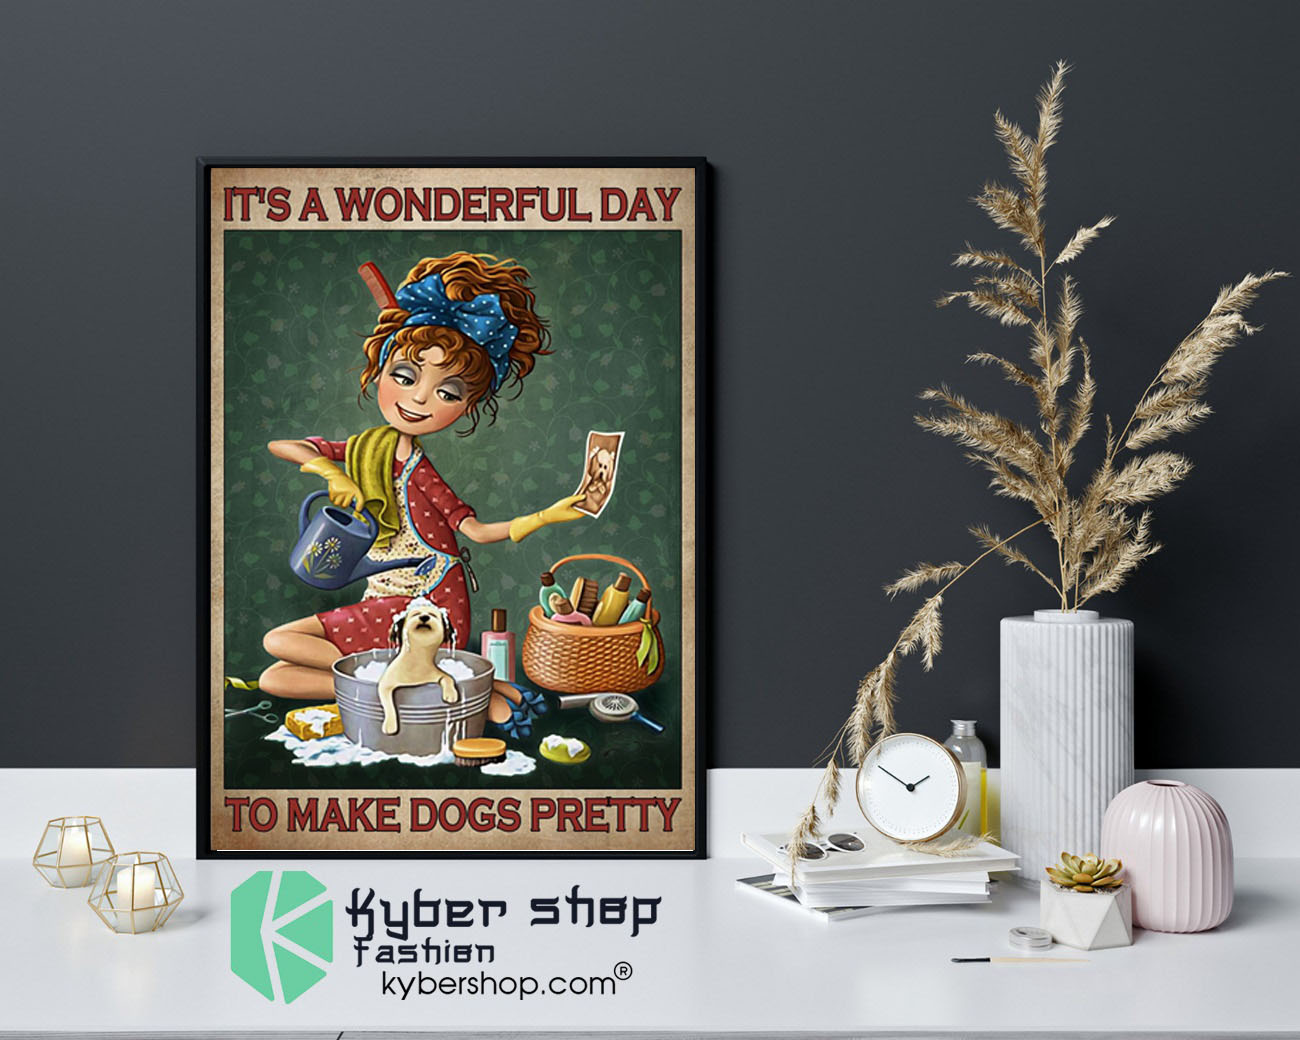 It's a wonderul day to make dogs pretty poster